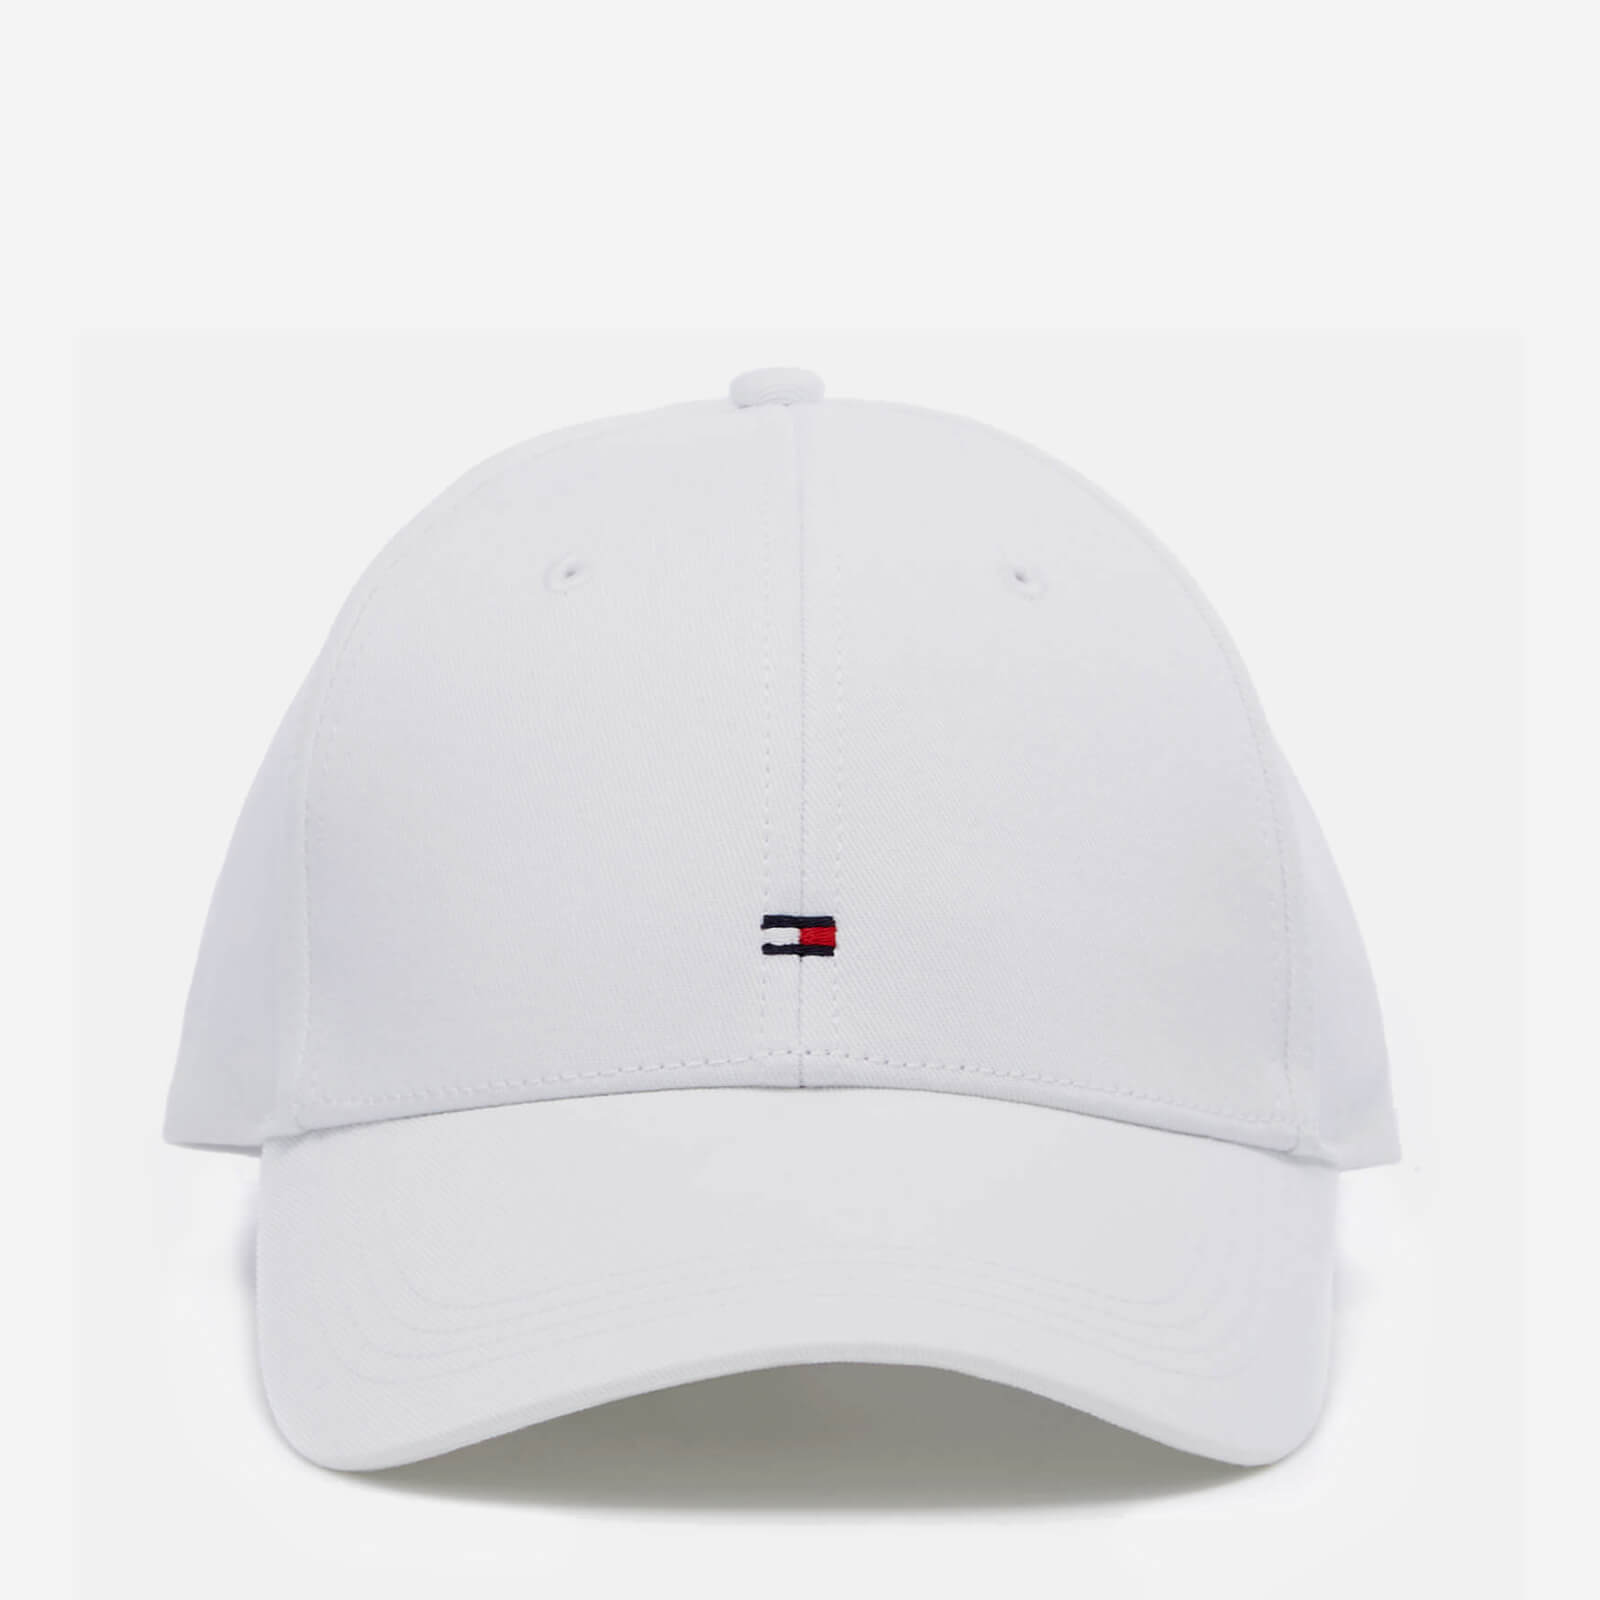 3945ef273f8 Tommy Hilfiger Men s Classic Cap - Classic White Clothing